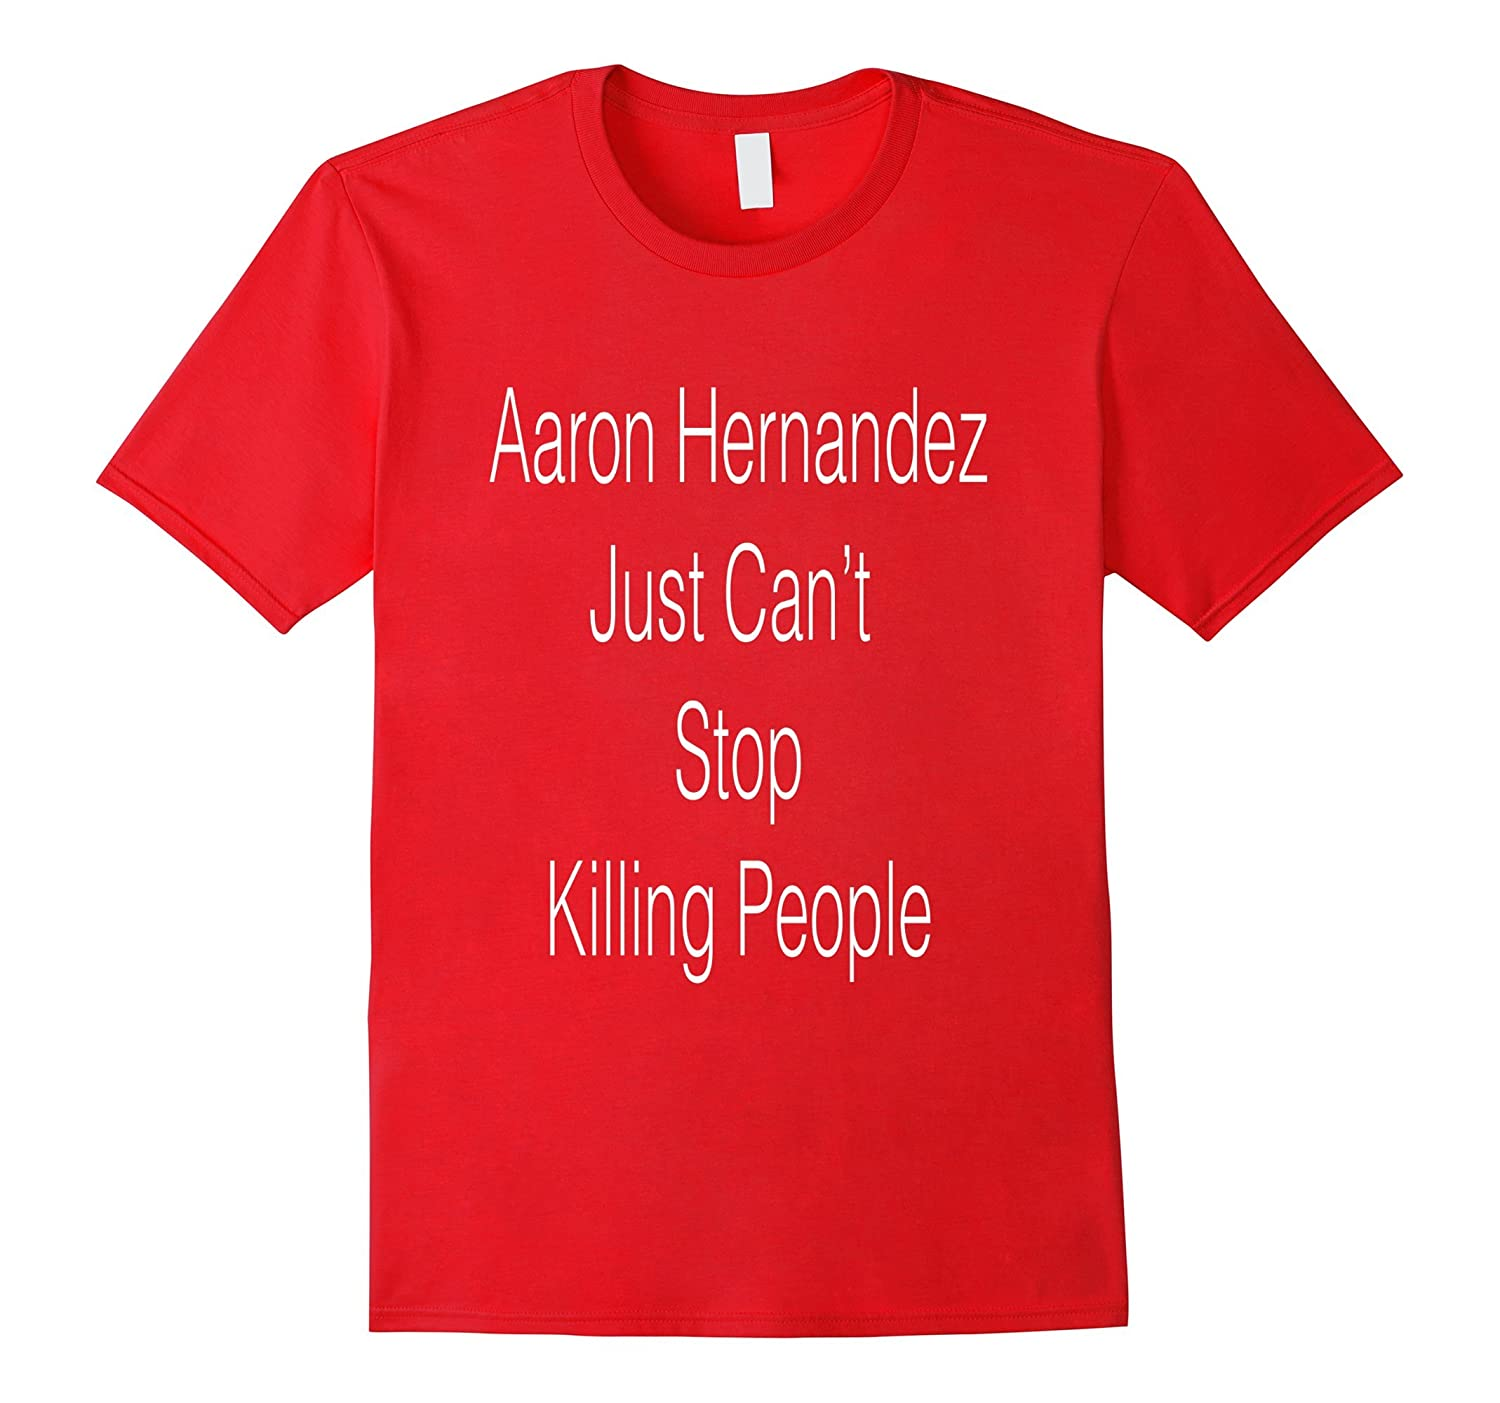 AHernandez Just Cant Stop Killing People-Vaci